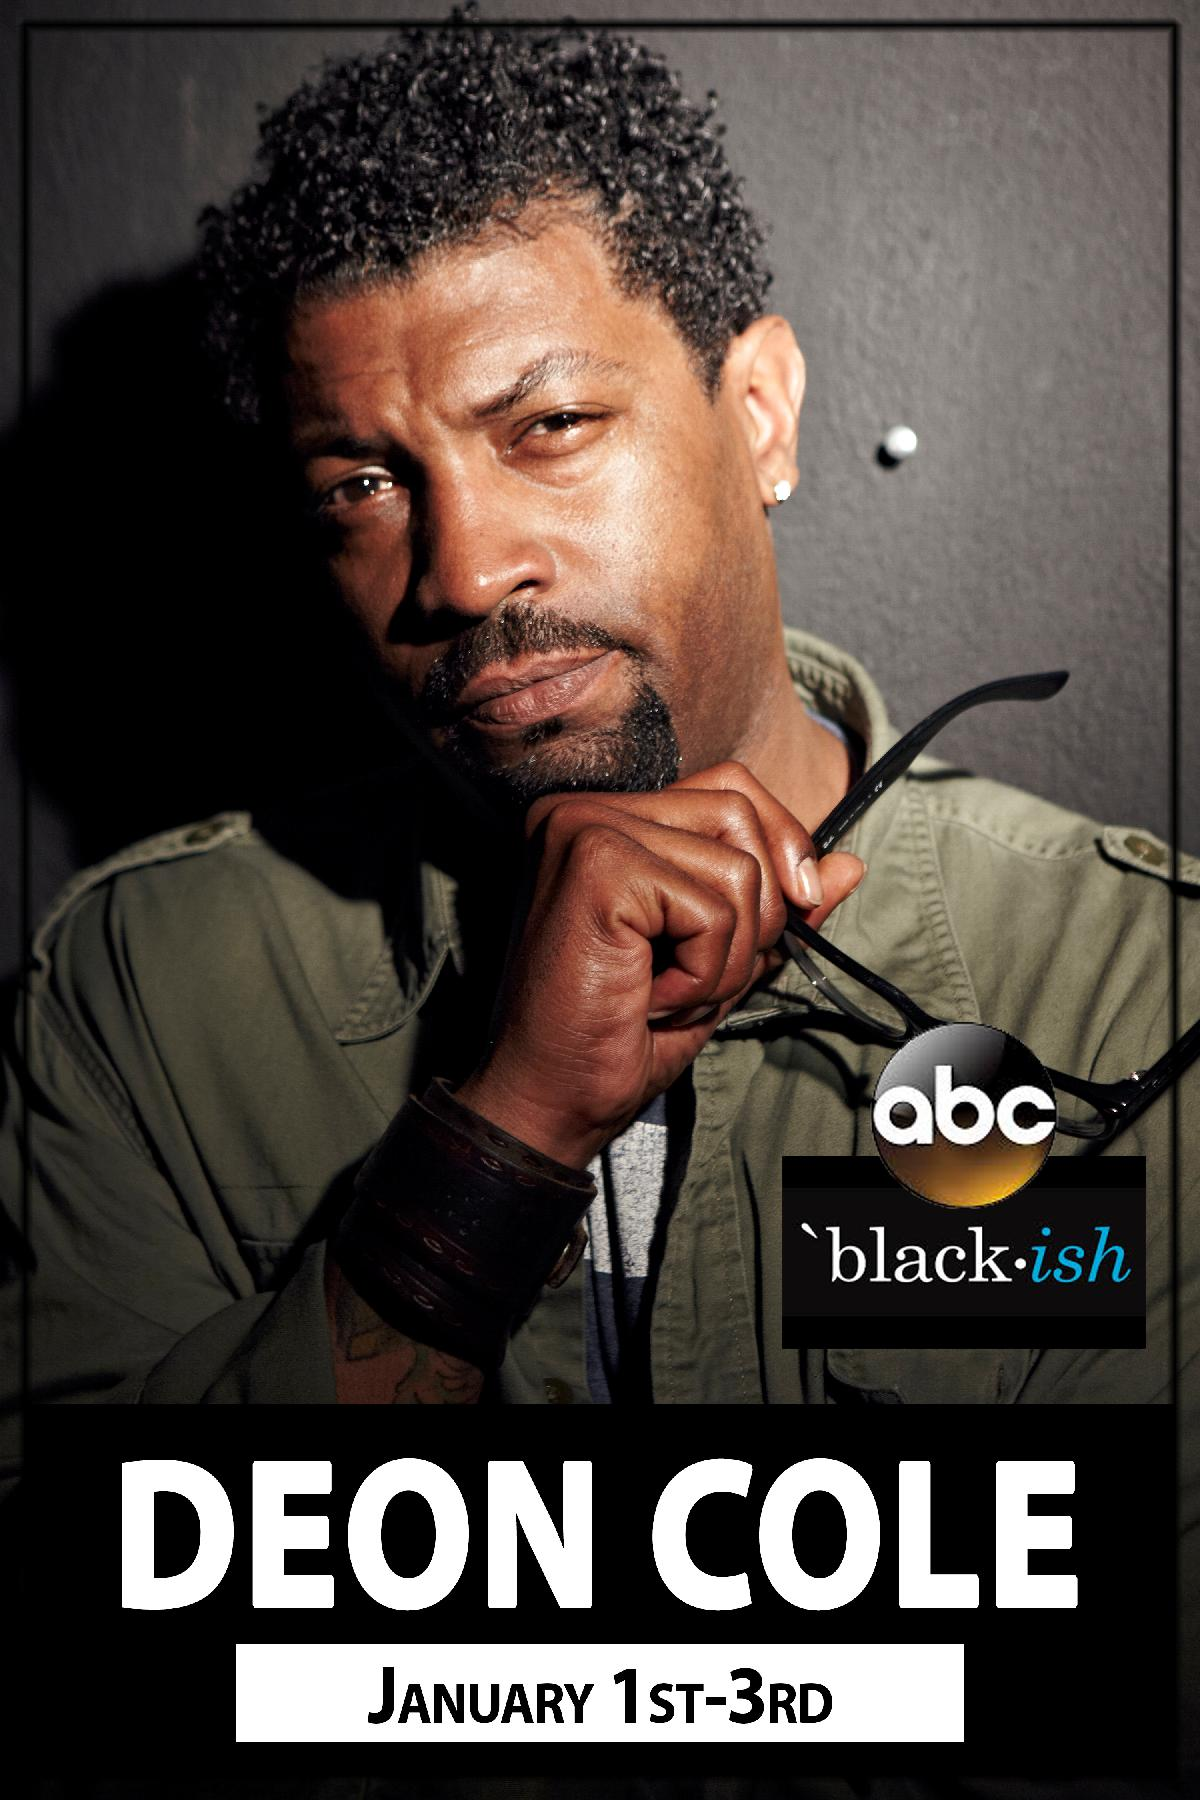 Deon Cole from ABCs Blackish live at Zanies Comedy Club Nashville January 1-3, 2016